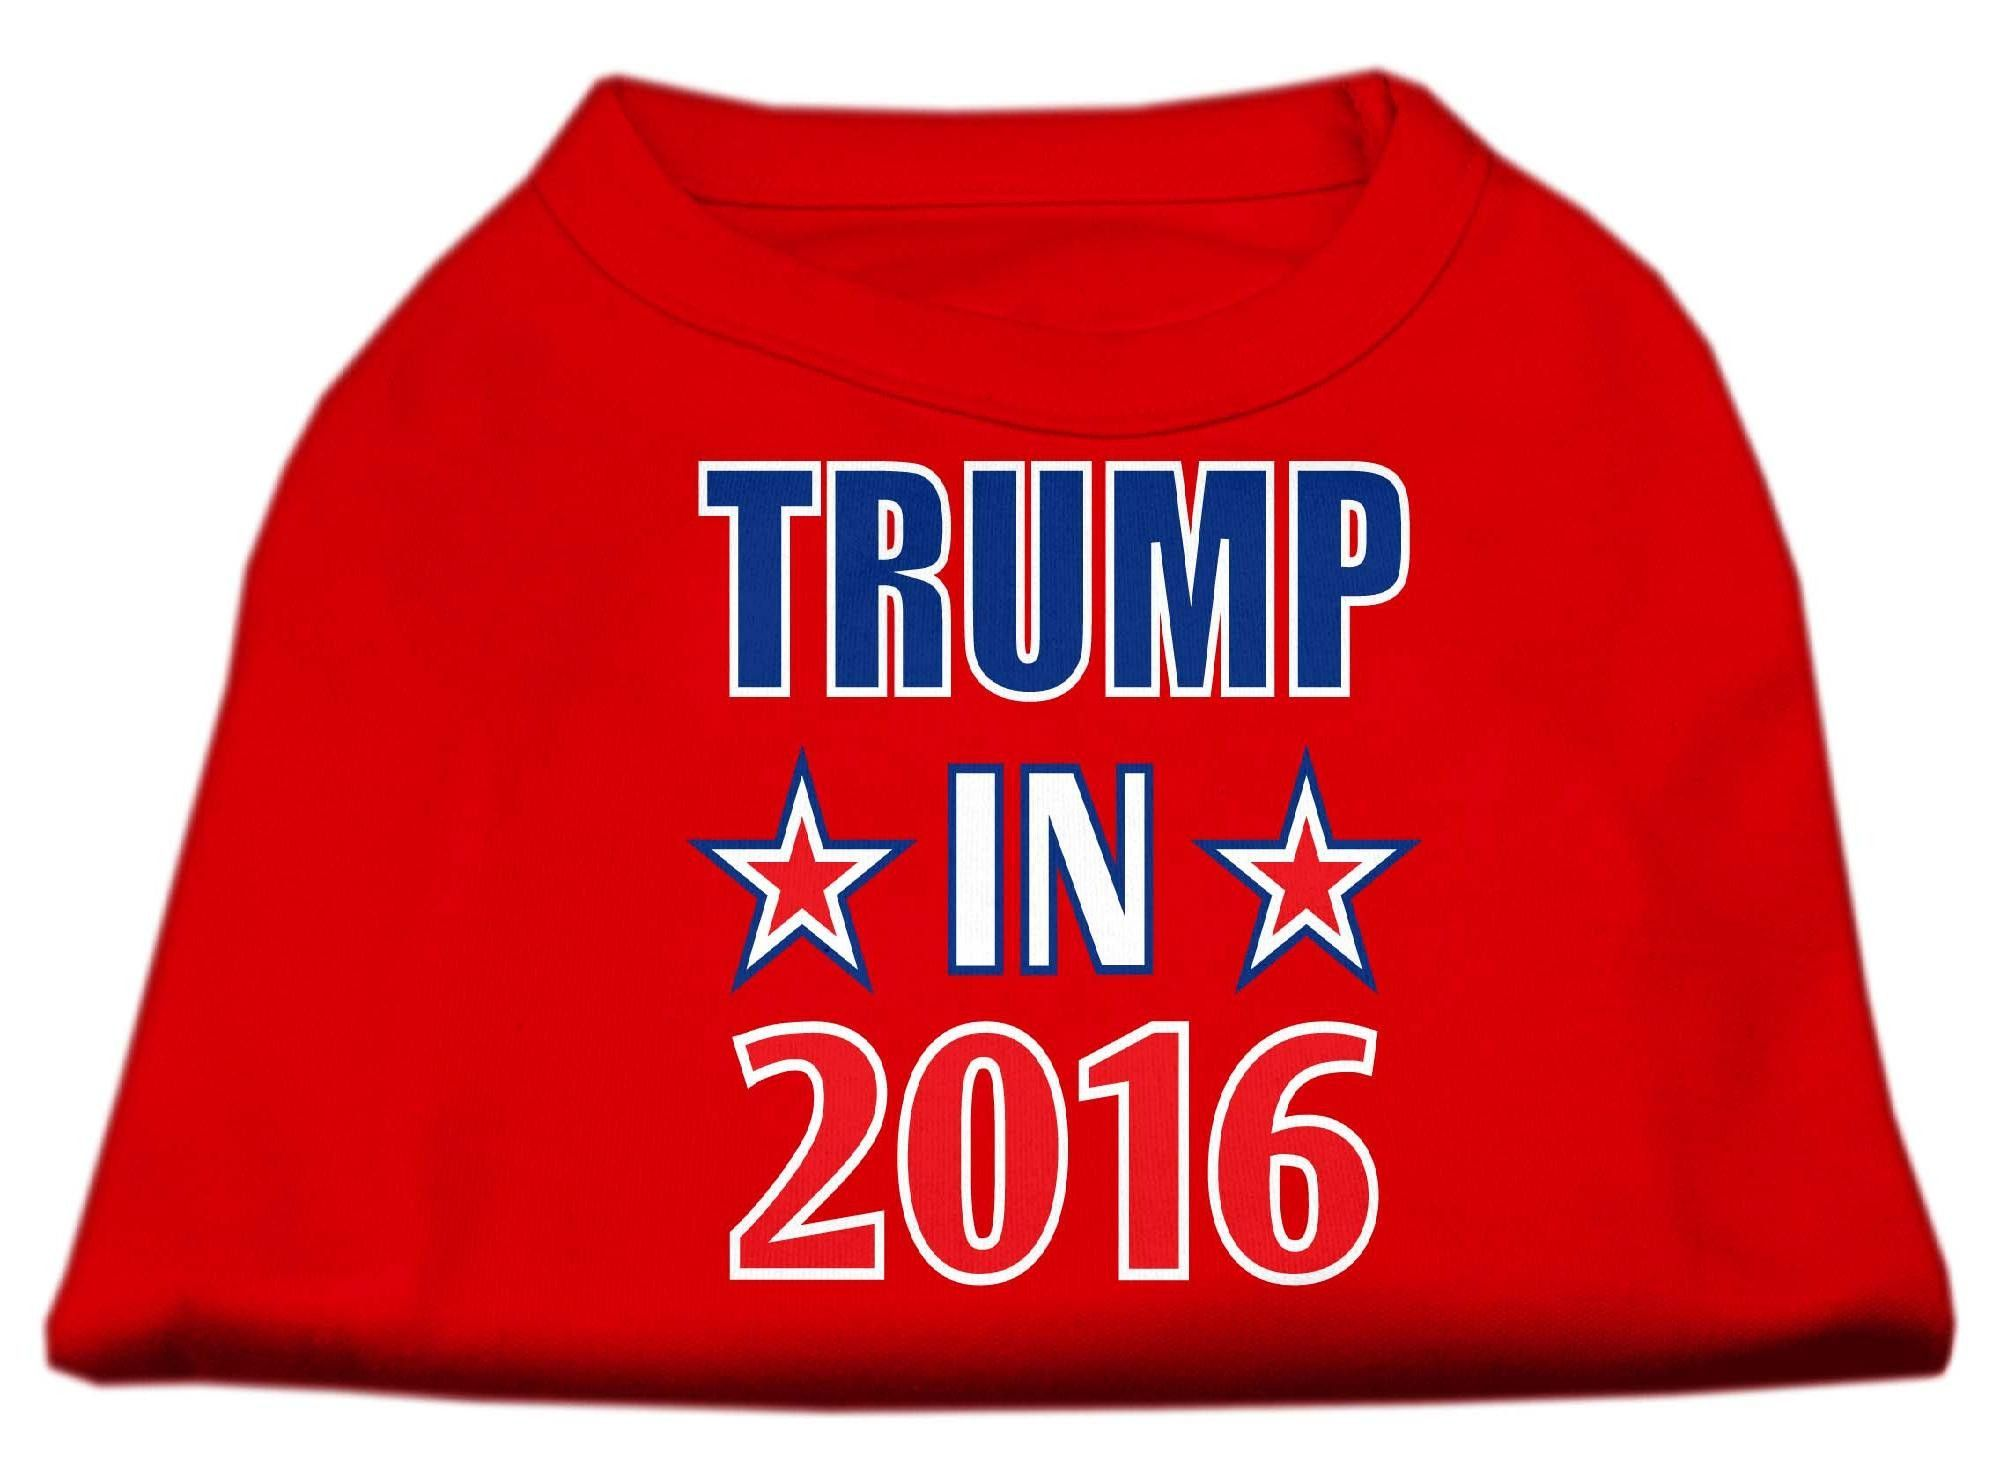 Trump in 2016 Election Screenprint Shirts Red Med (12)